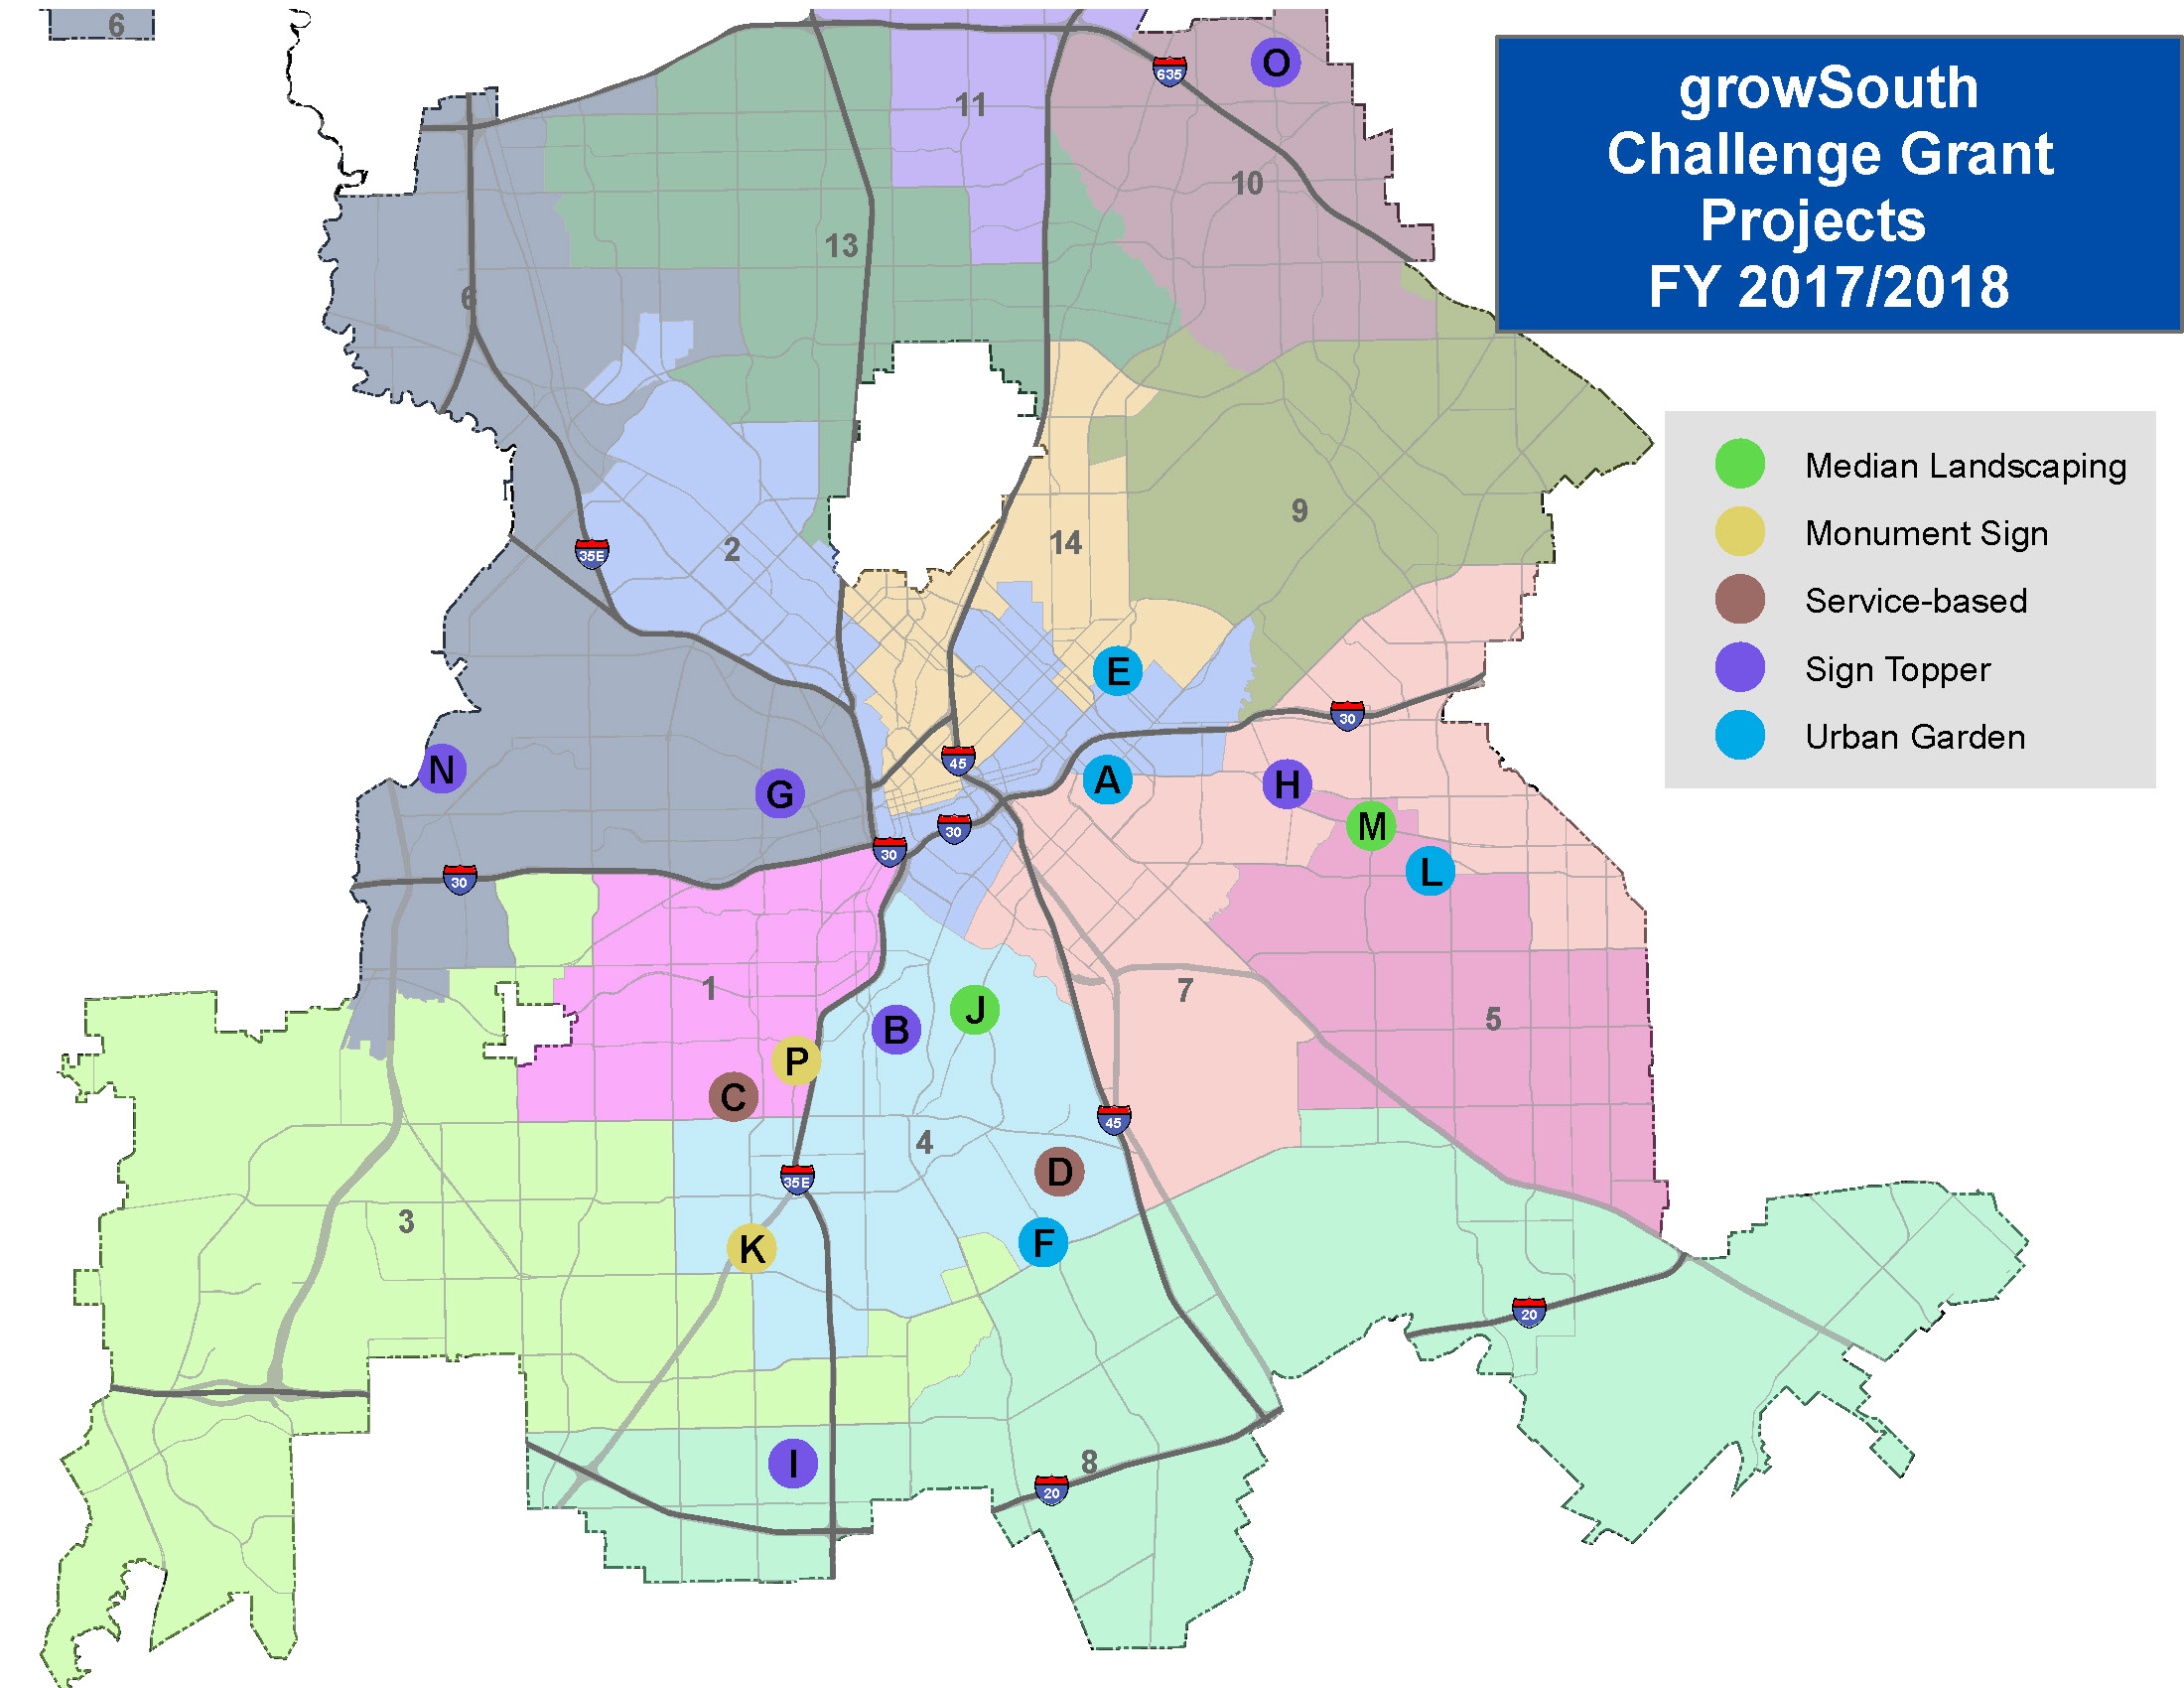 growSouth2017-2018online map.jpg